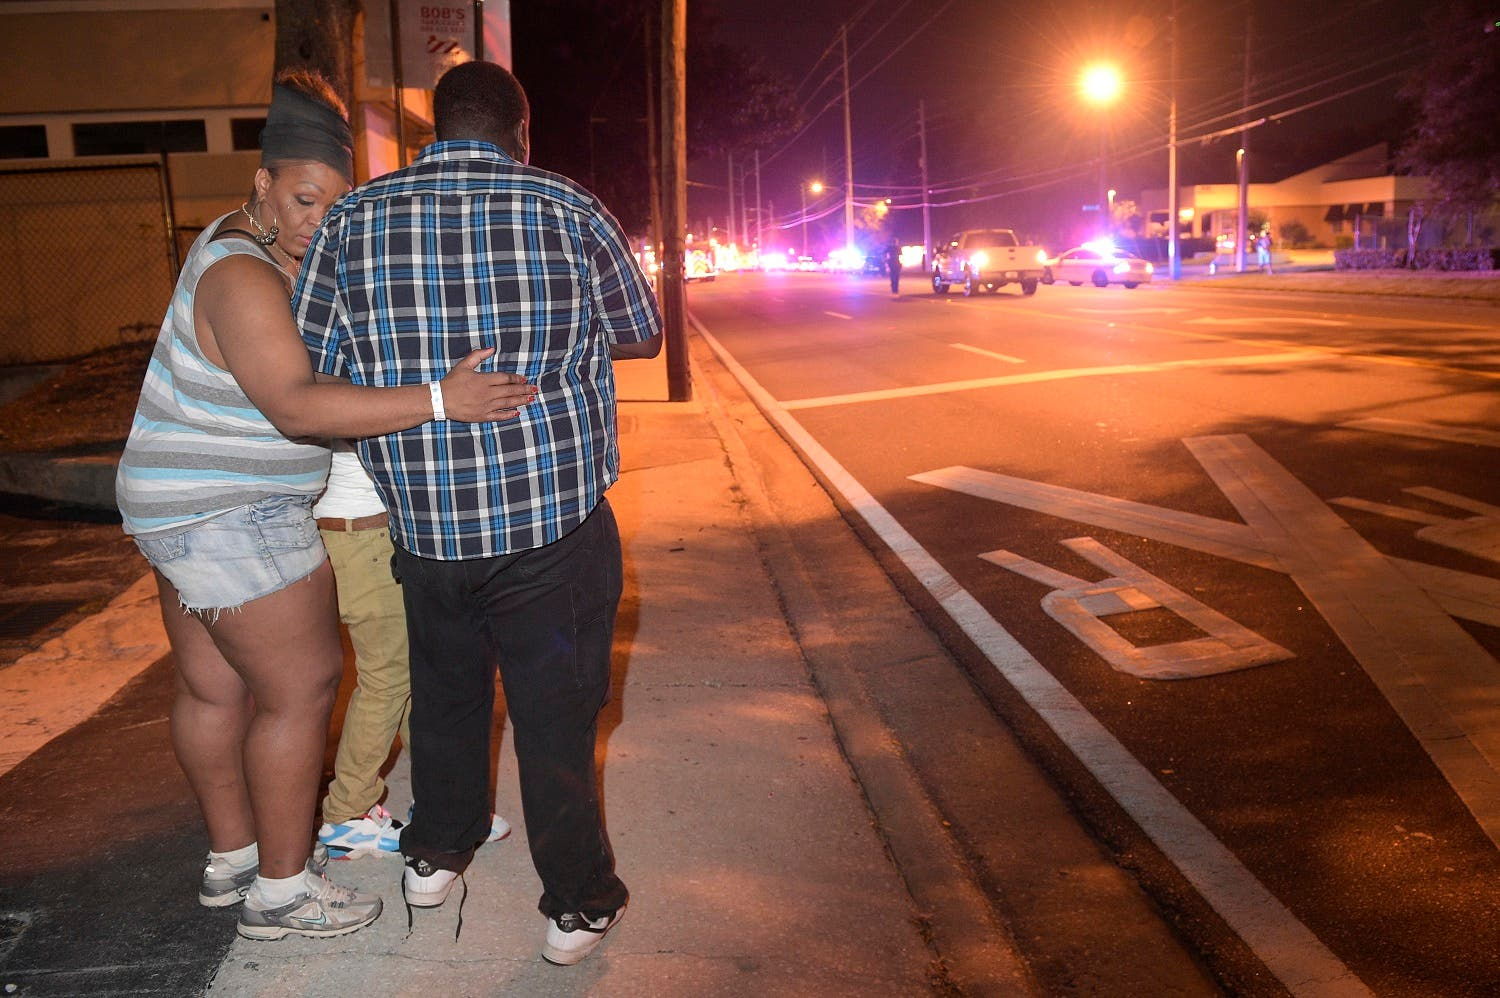 Friends and family members embrace outside the Orlando Police Headquarters during the investigation of a shooting at the Pulse night club (Photo: AP)